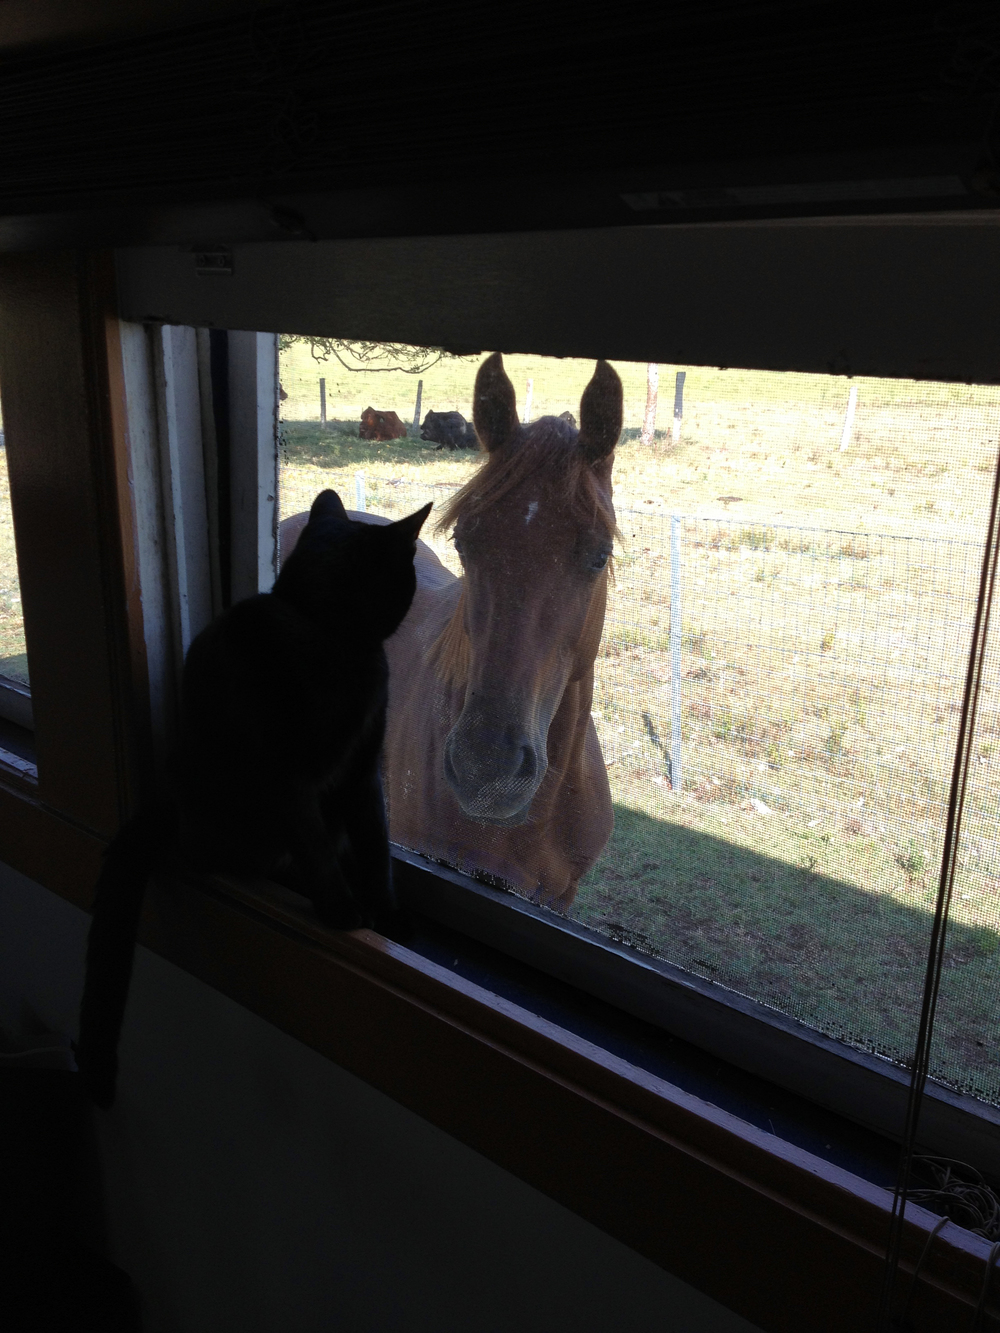 Champy, the horse stands outside the window, staring longingly at unlikely friend Morris, the cat who sits inside on the windowsill. Although Morris did not initially like Champy, it seems these two now hate being apart.  Morris regularly rides Champy's back around the pasture, clocking in more riding time than even their human owner Jennifer Boyle. While Morris has attempted such riding adventures with other horses, Champy is the only one that not only tolerates but loves this furry riding companion. (Photo credit: © National Geographic Channel / Jennifer Boyle)